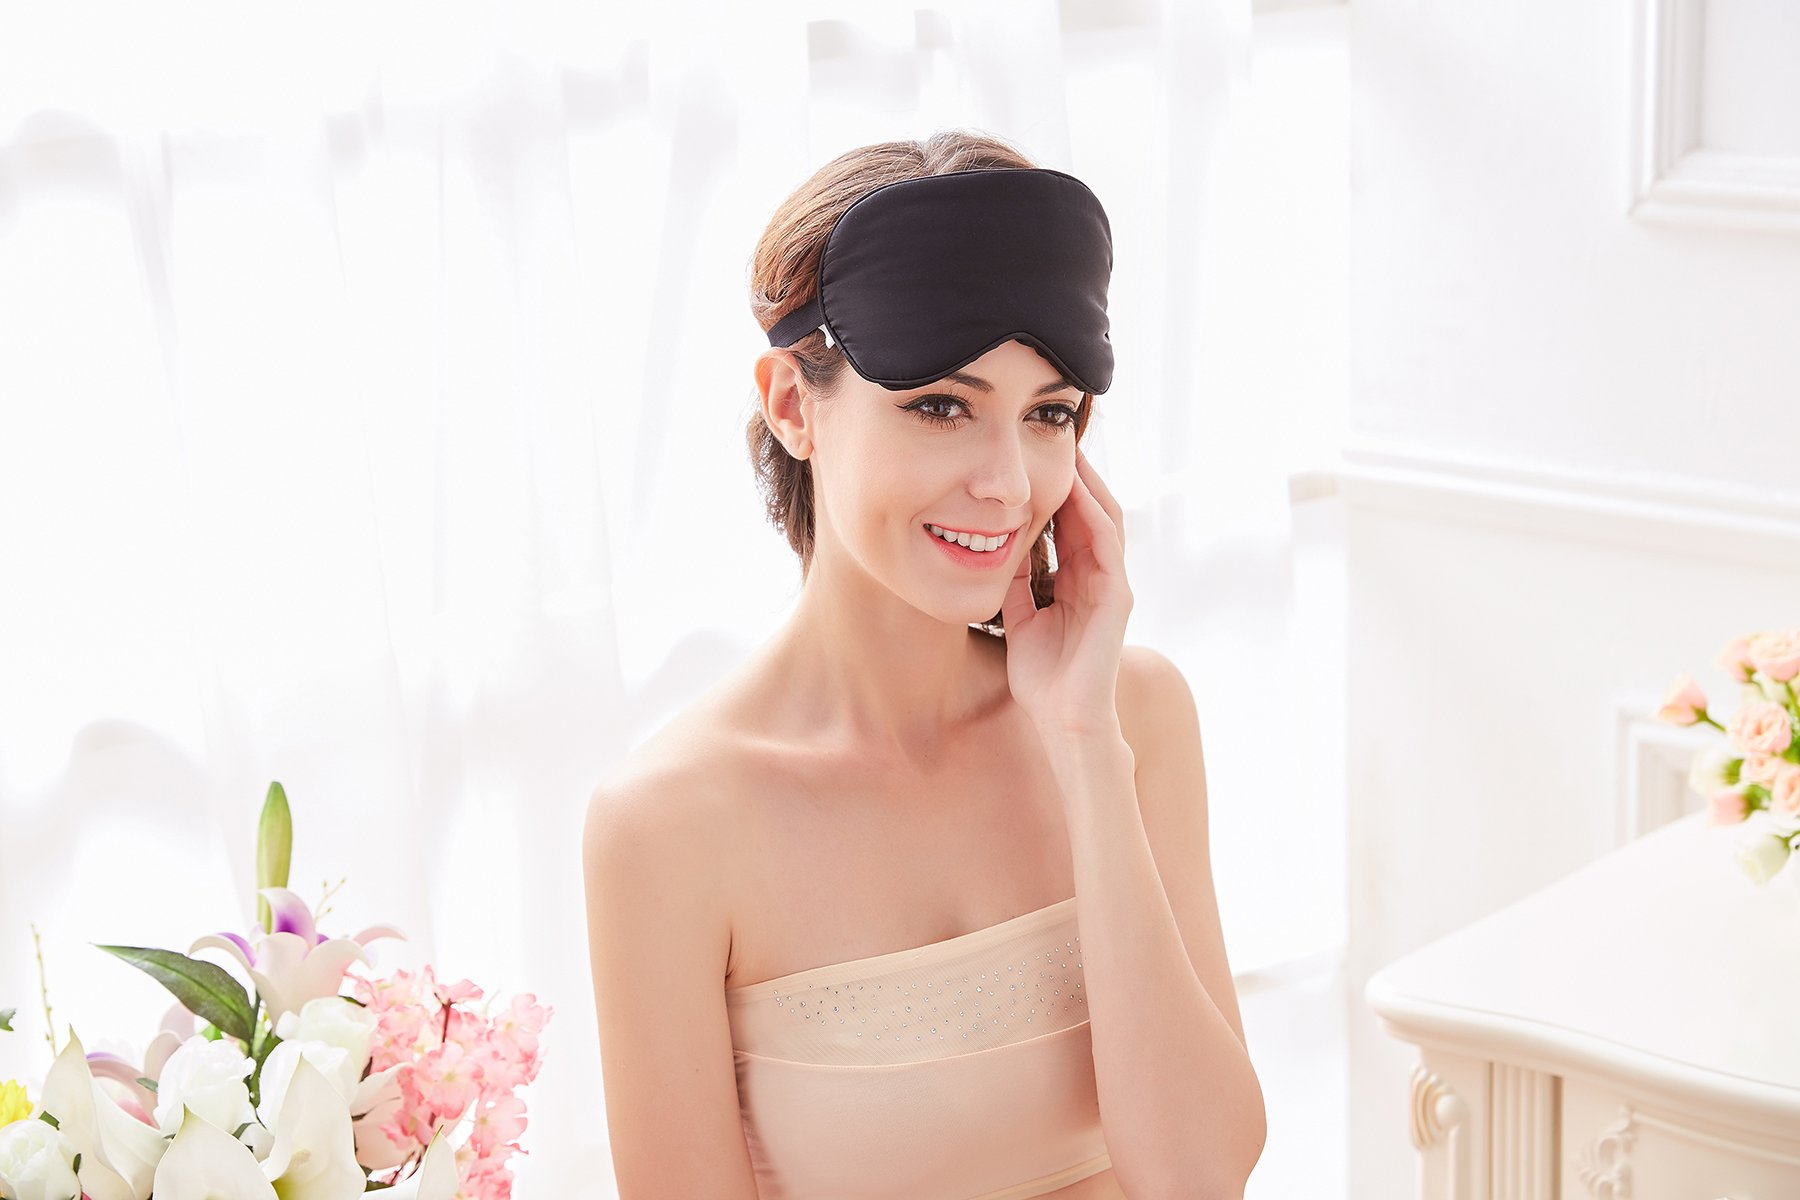 Natural Silk Sleep Mask & Blindfold - Lifetime Guarantee - Super Smooth Eye Mask for Men & Women & Kids - Your Best Travel Sleeping Helper - Include FREE Ear Plugs by Babo Care (Image #7)